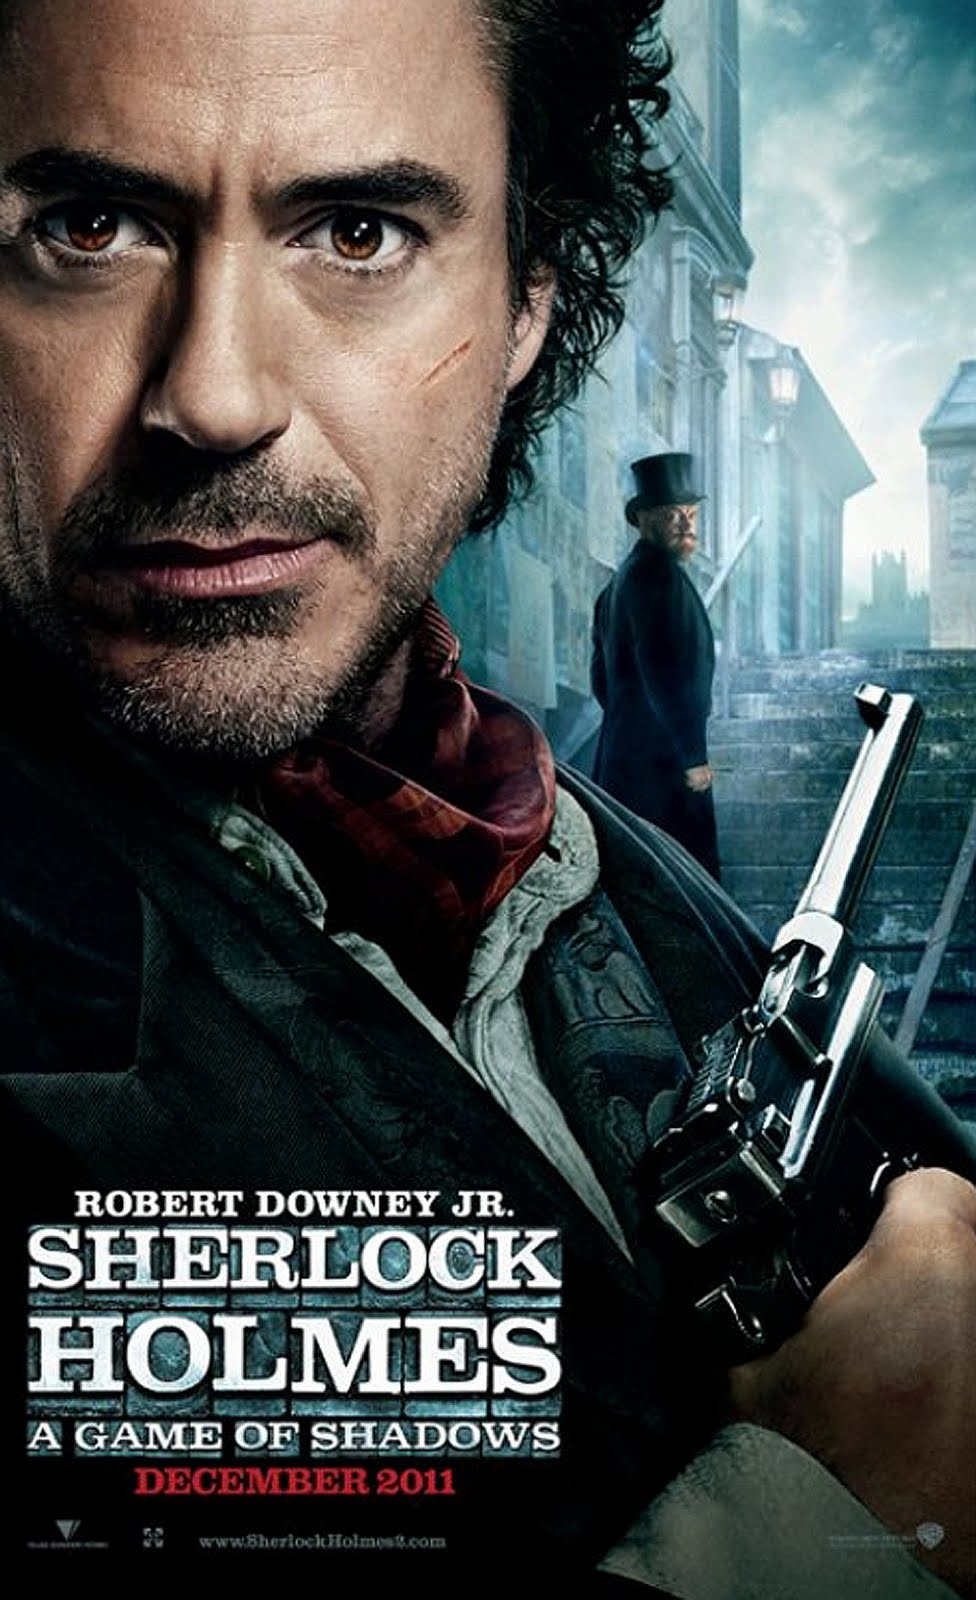 Sherlock Holmes A Game of Shadows (2011) | m-HD | 900p | Hindi | Eng | BHATTI87